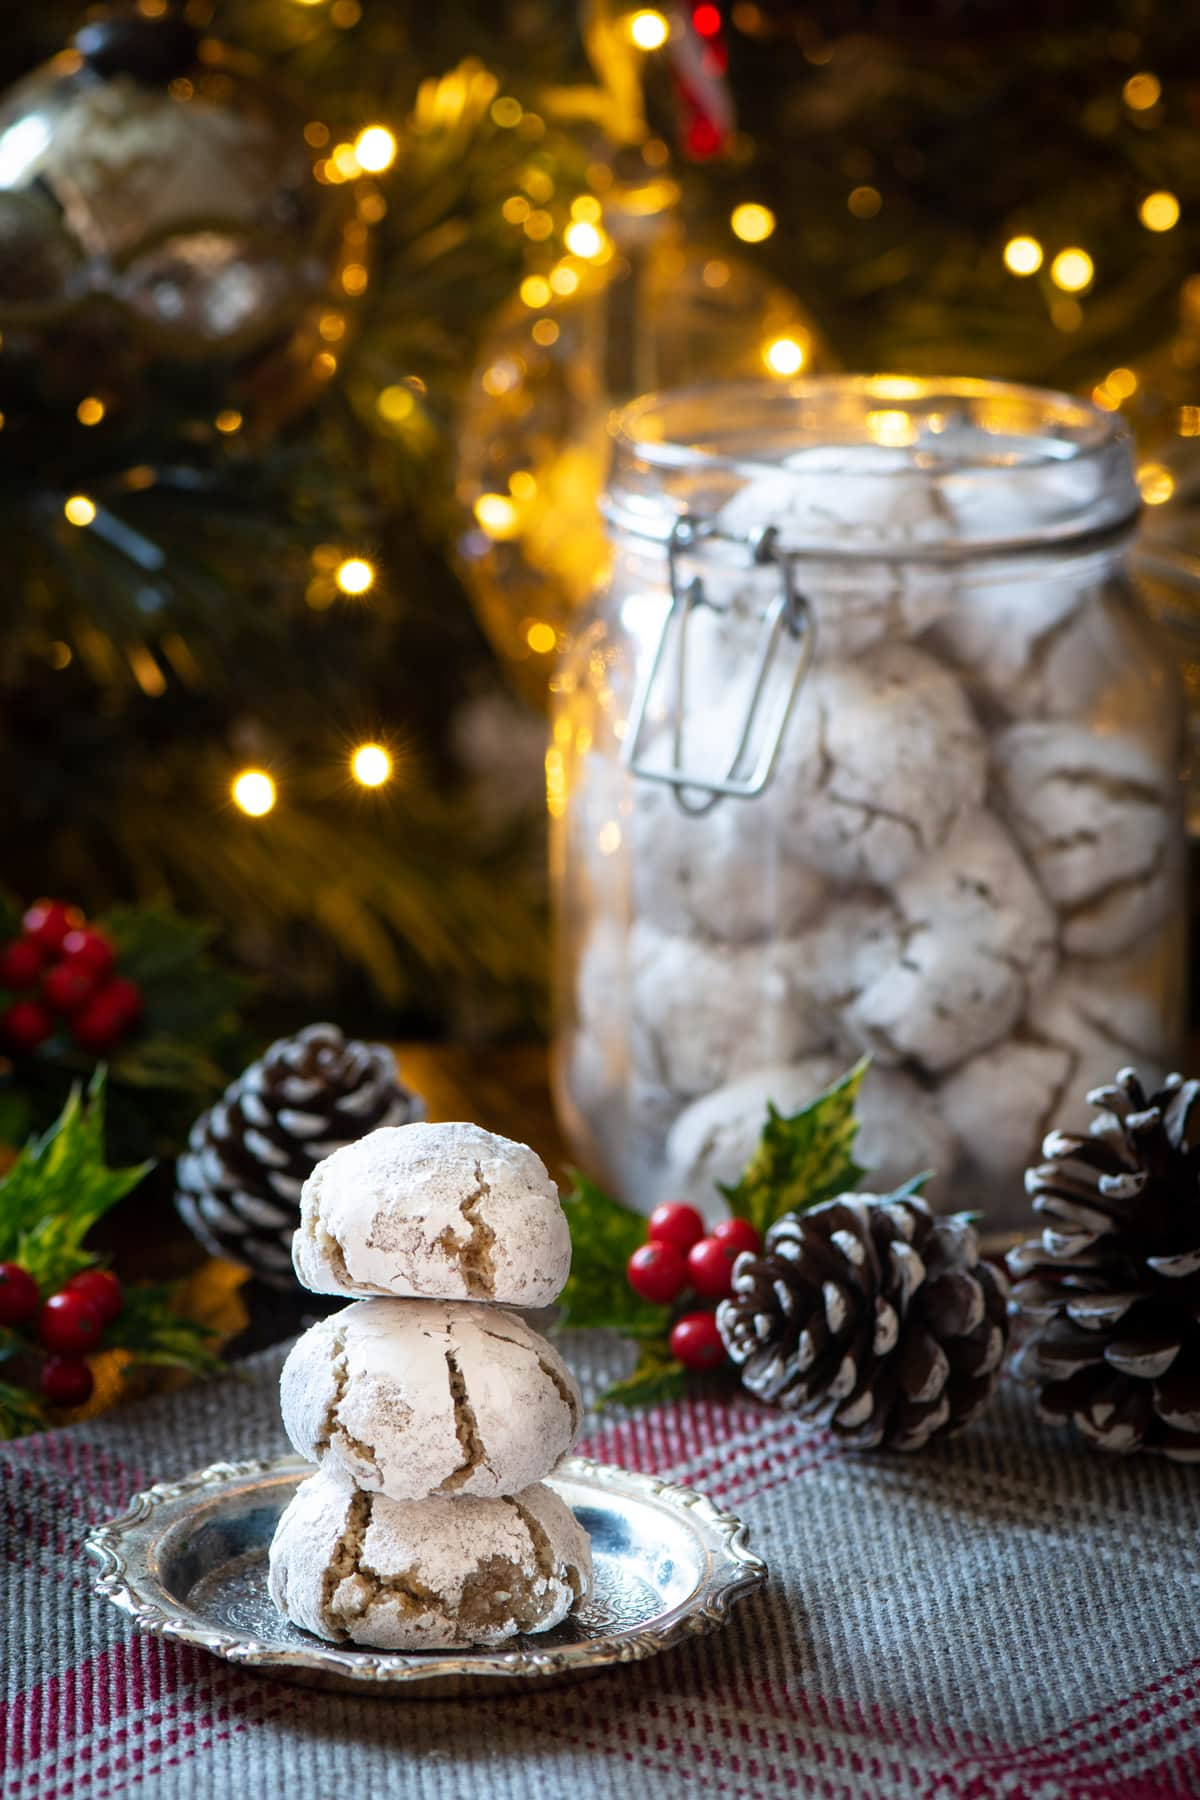 A stack of Christmas amaretti biscuits.